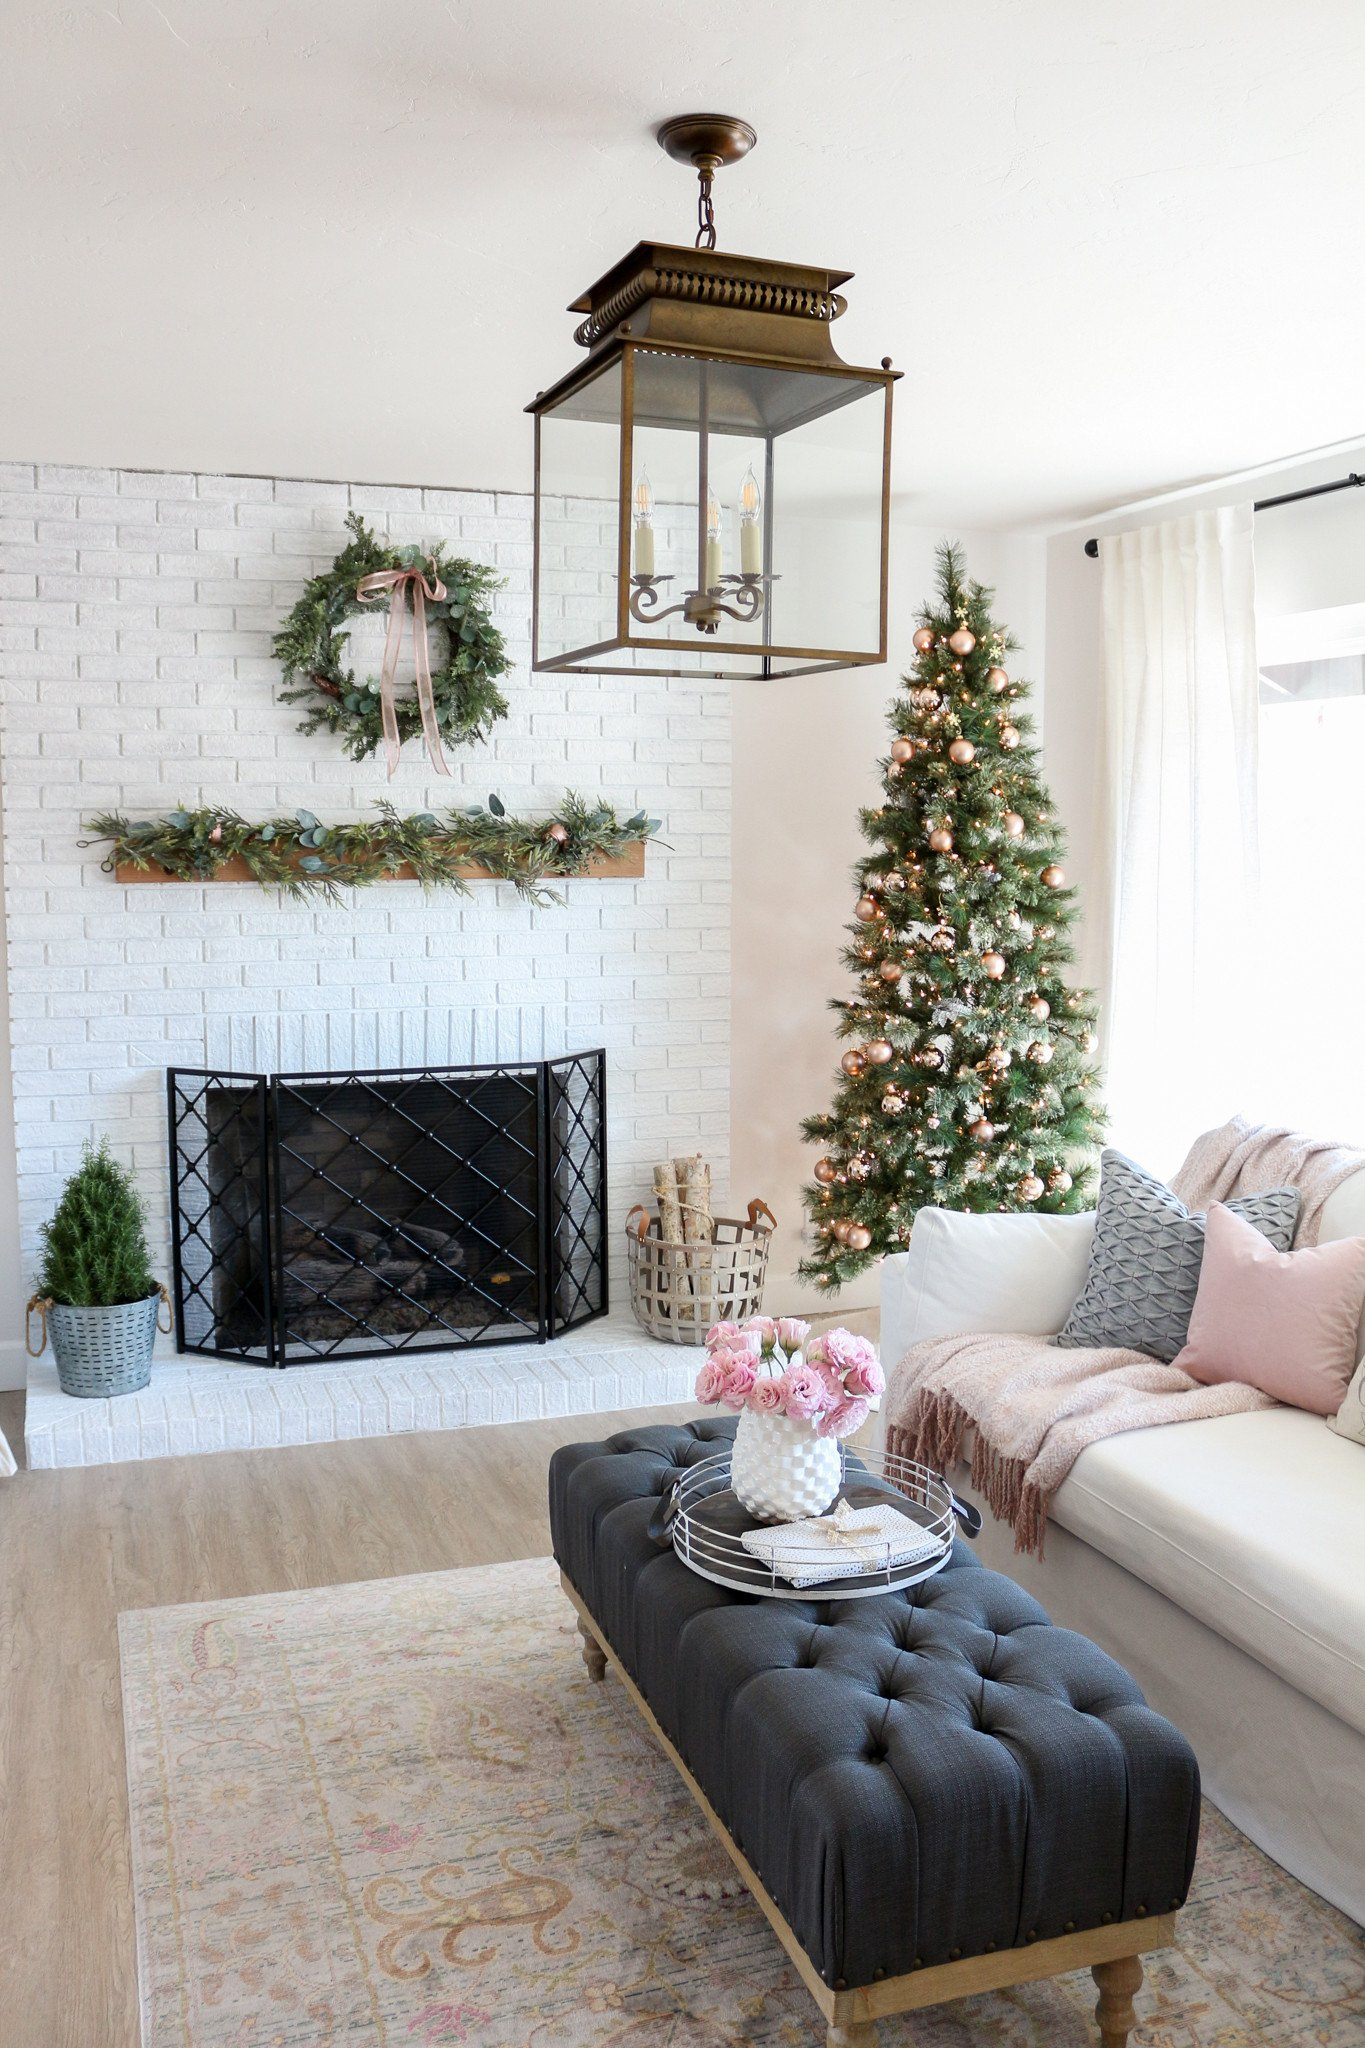 Modern Farmhouse Living Room Decorating Ideas Inspirational Modern Farmhouse Style Living Room Holiday tour